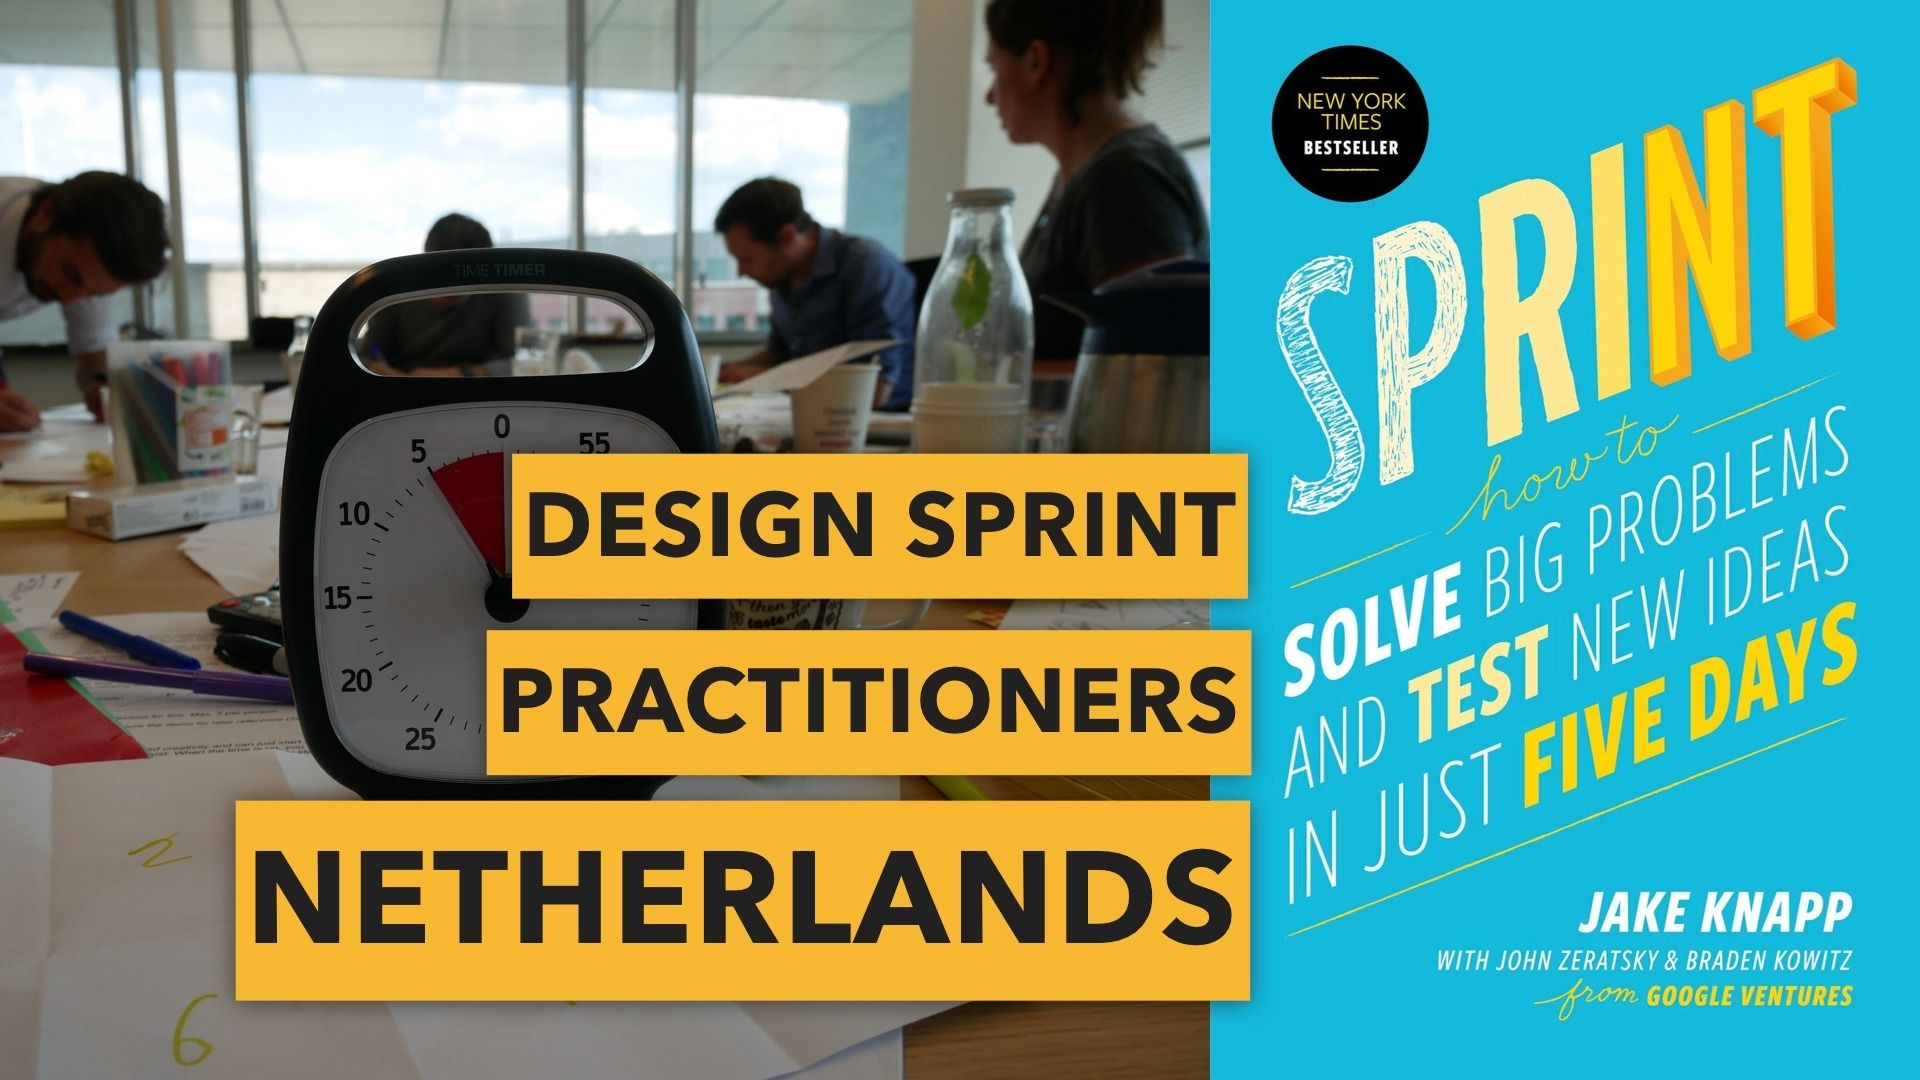 Design Sprint Practitioners NL